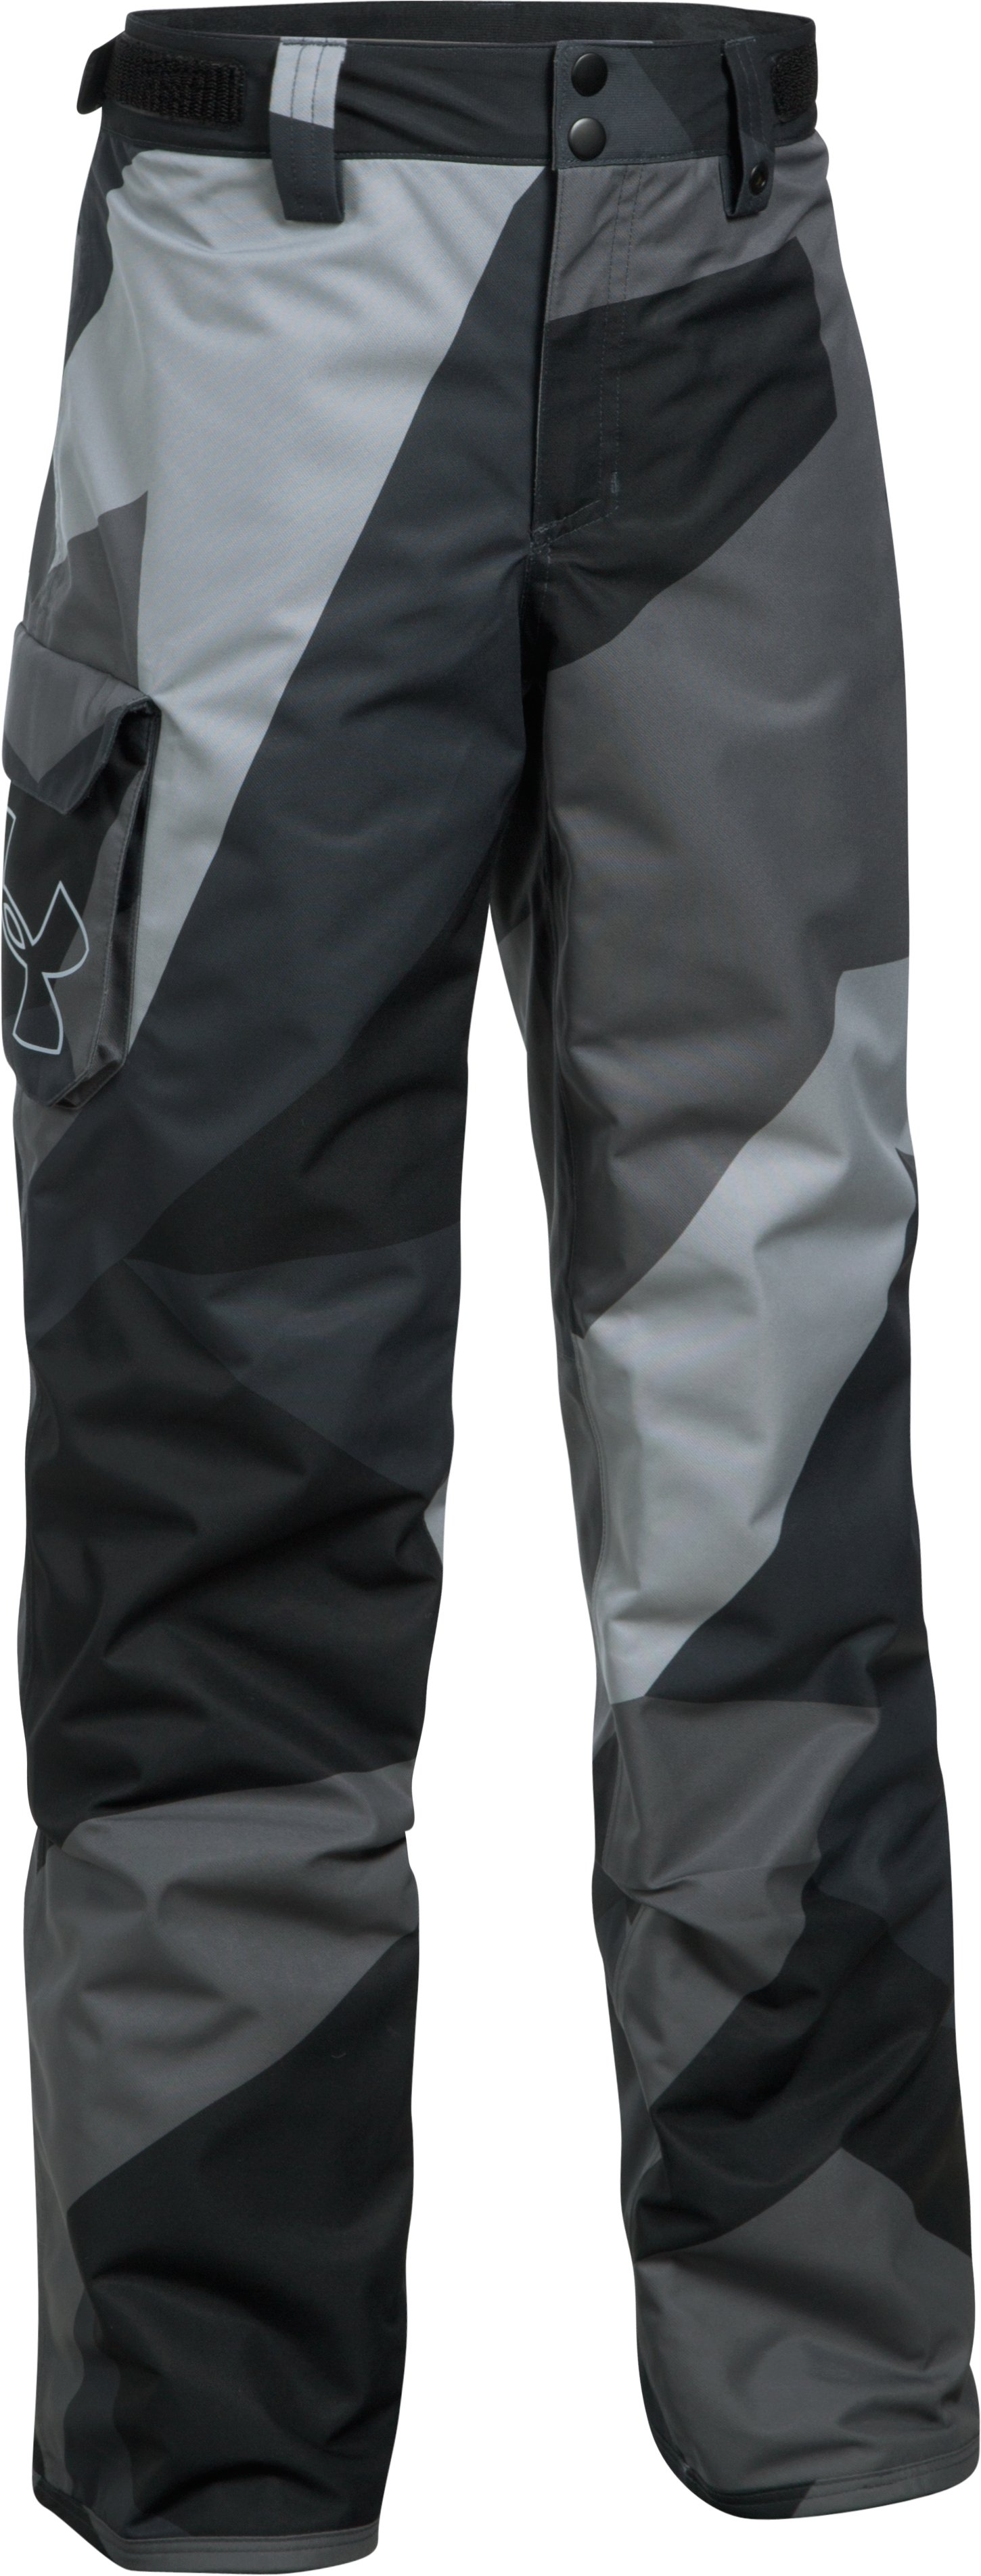 Boys' UA Storm Chutes Insulated Pants, Steel